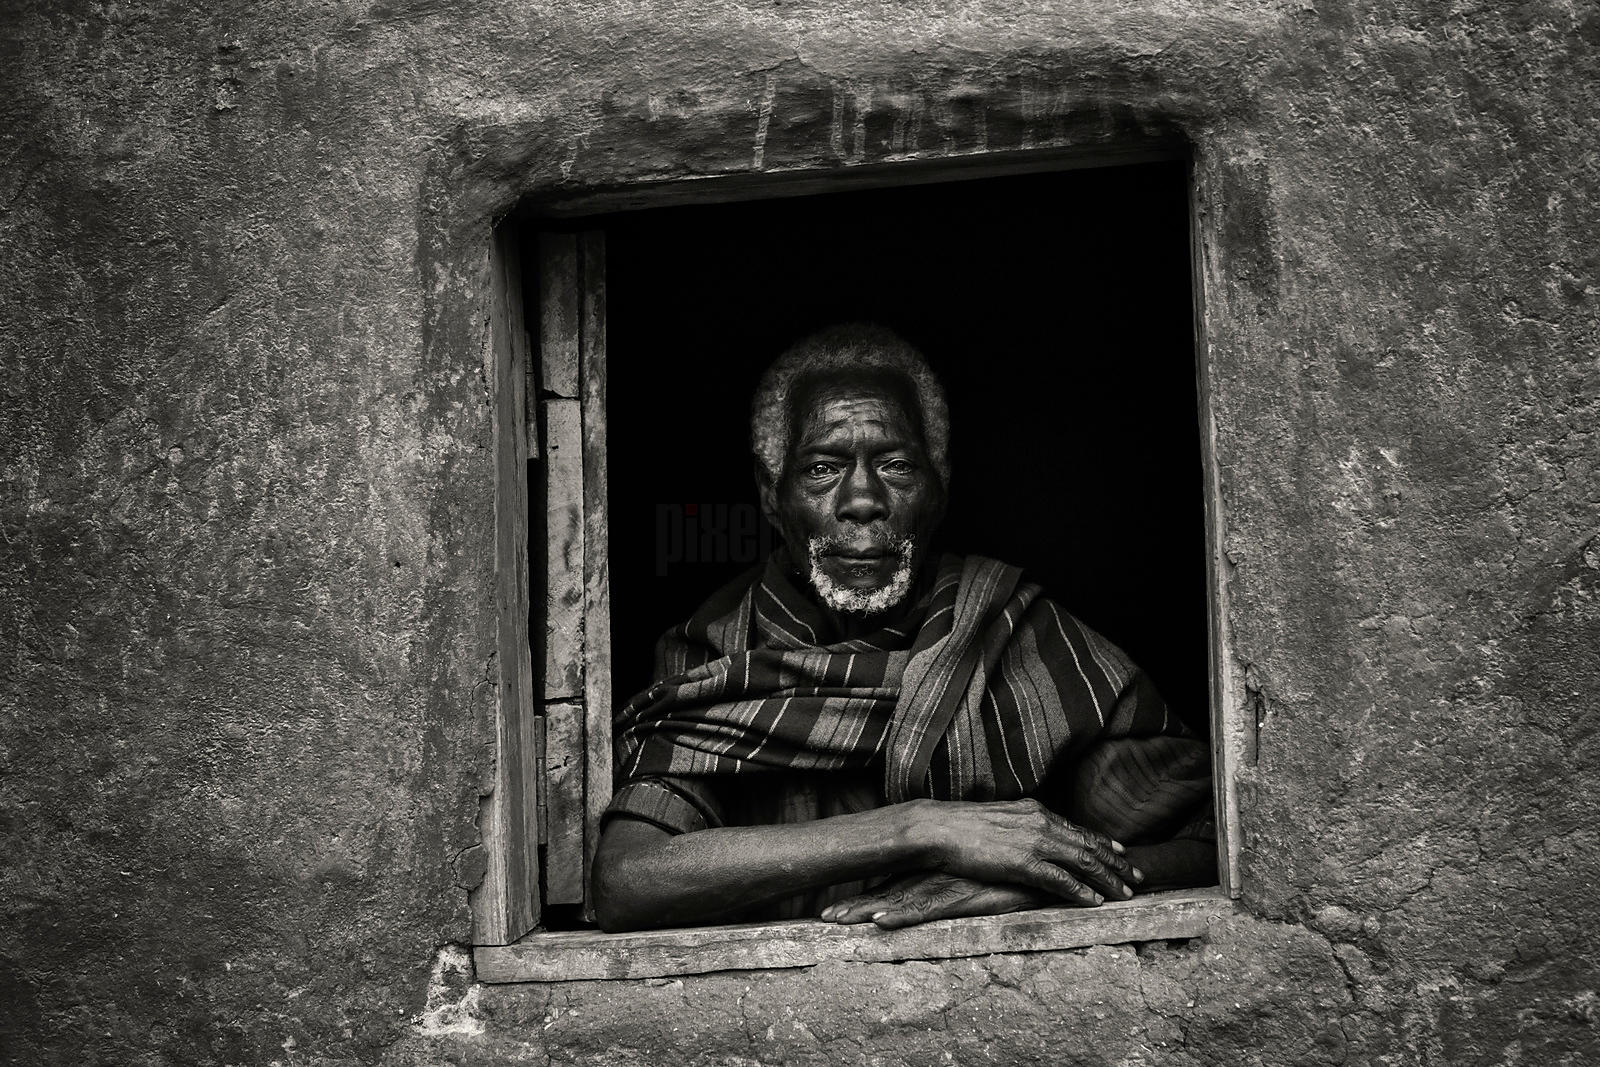 Portrait of an Elderly Ari Man in a Window of his Home